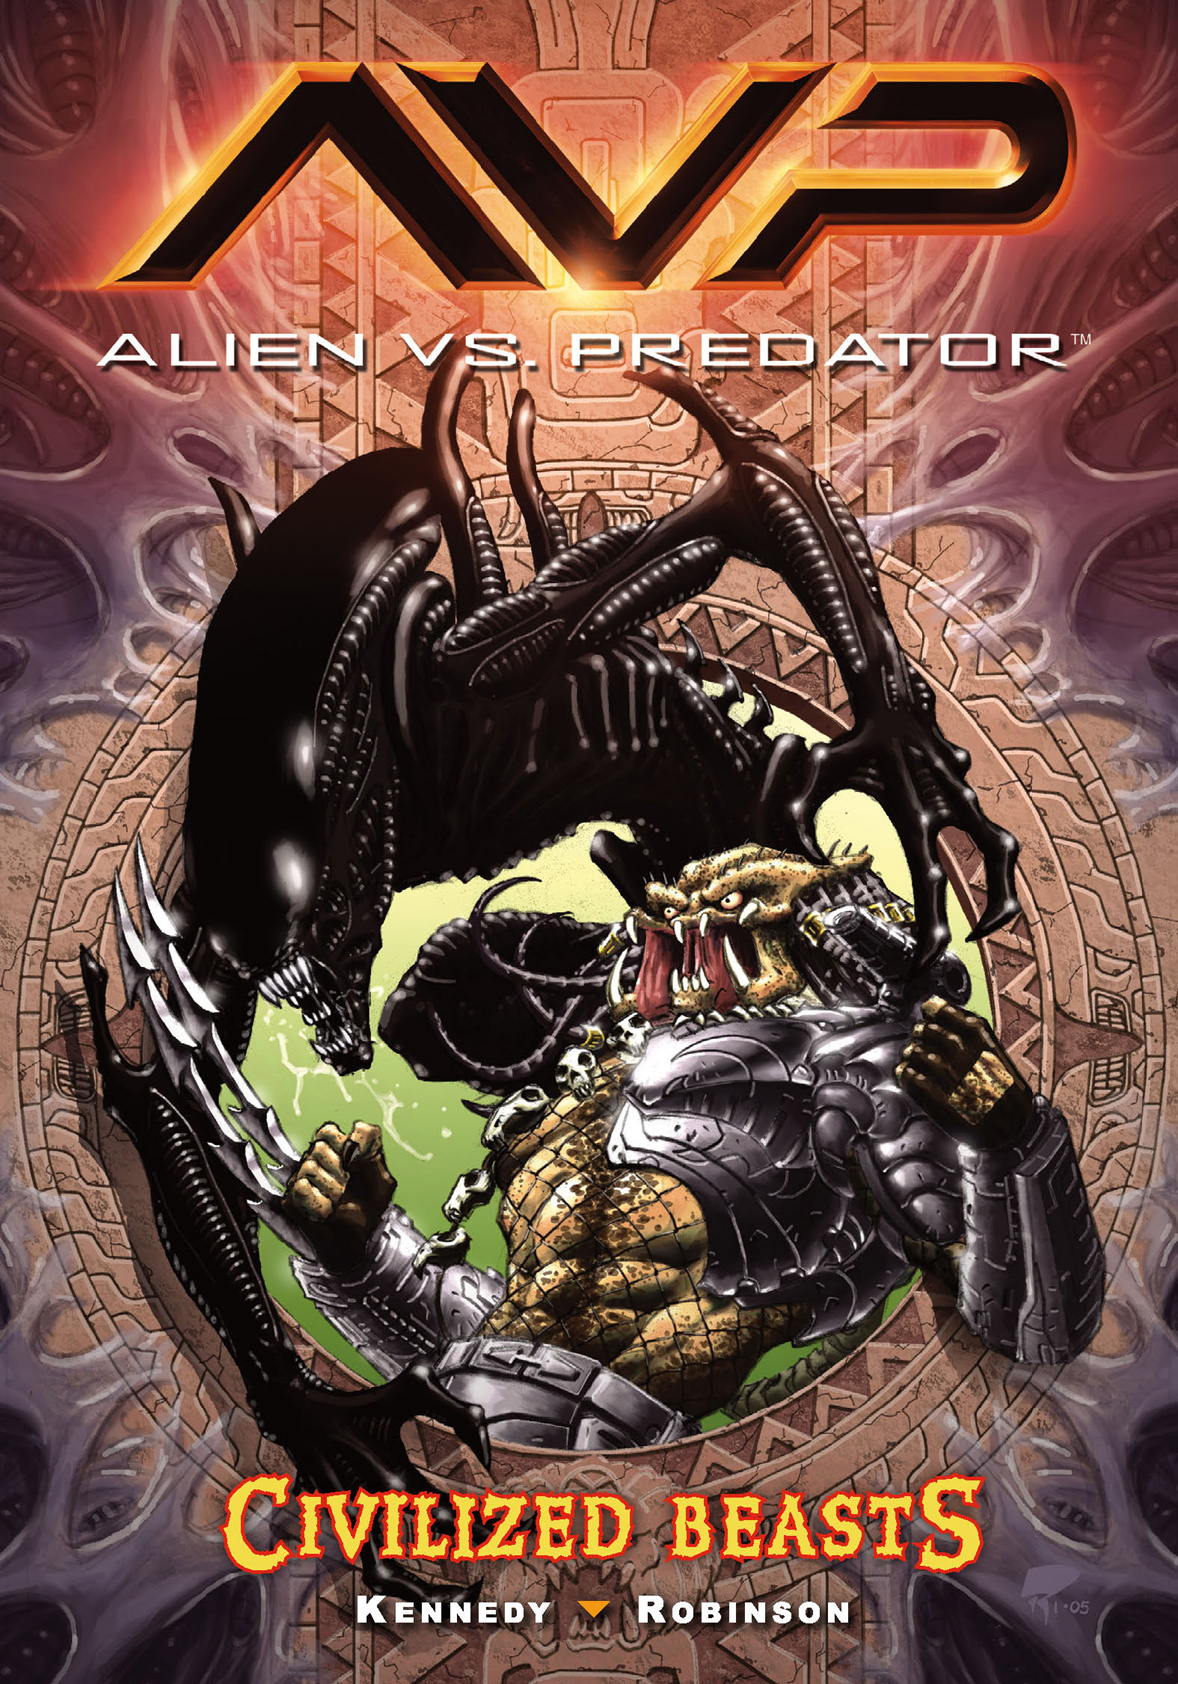 Alien vs. Predator Volume 2: Civilized Beasts By: Mike Kennedy, Roger Robinson (Artist)